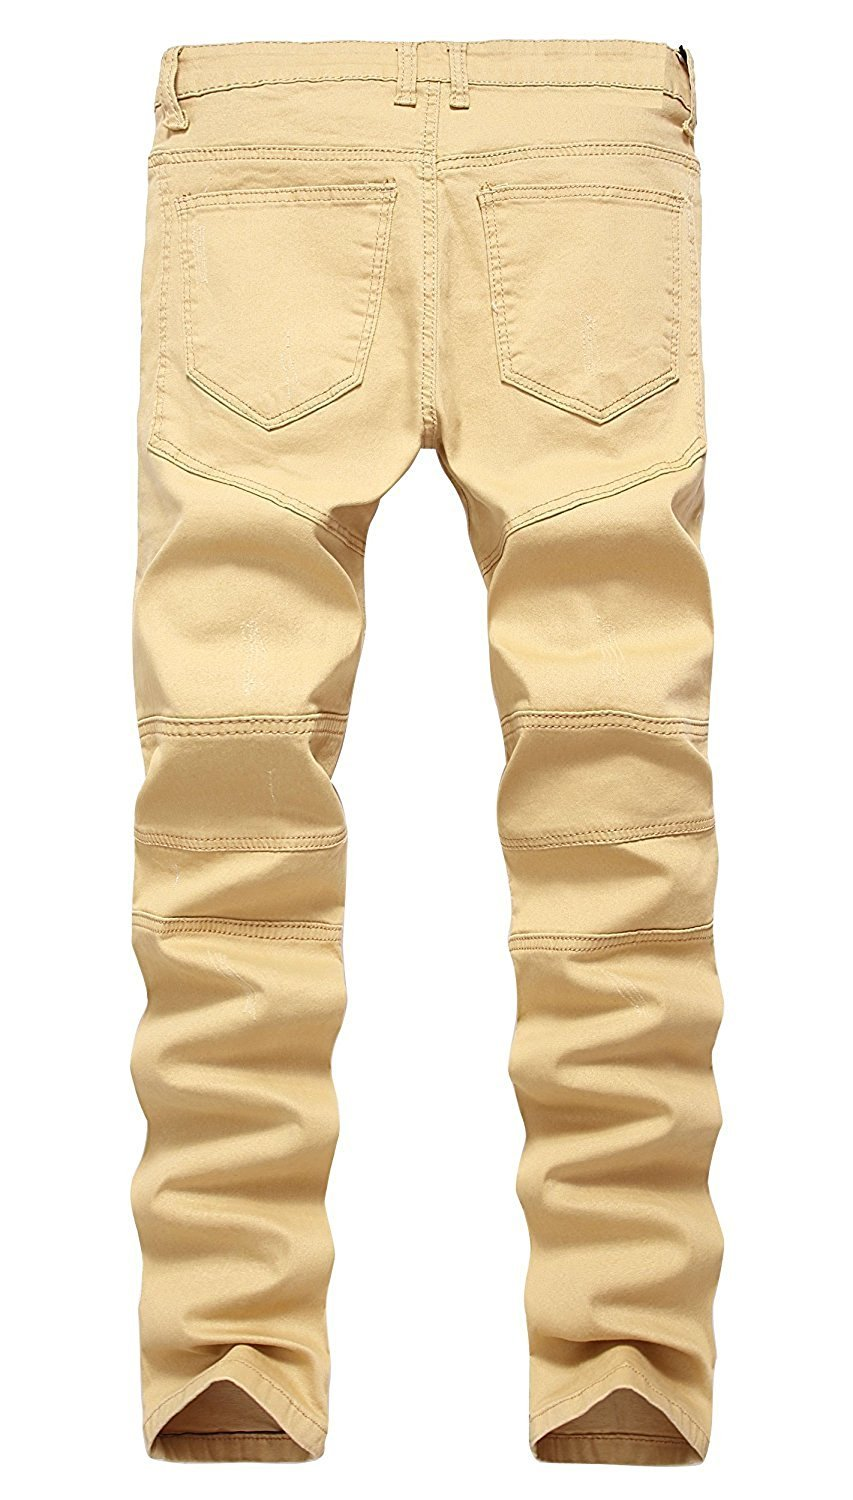 TOPING Fine Fashion;Handsome Men's Ripped Destroyed Distressed Slim Fit Jeans Biker Jeans 04 Khaki28W x 30L